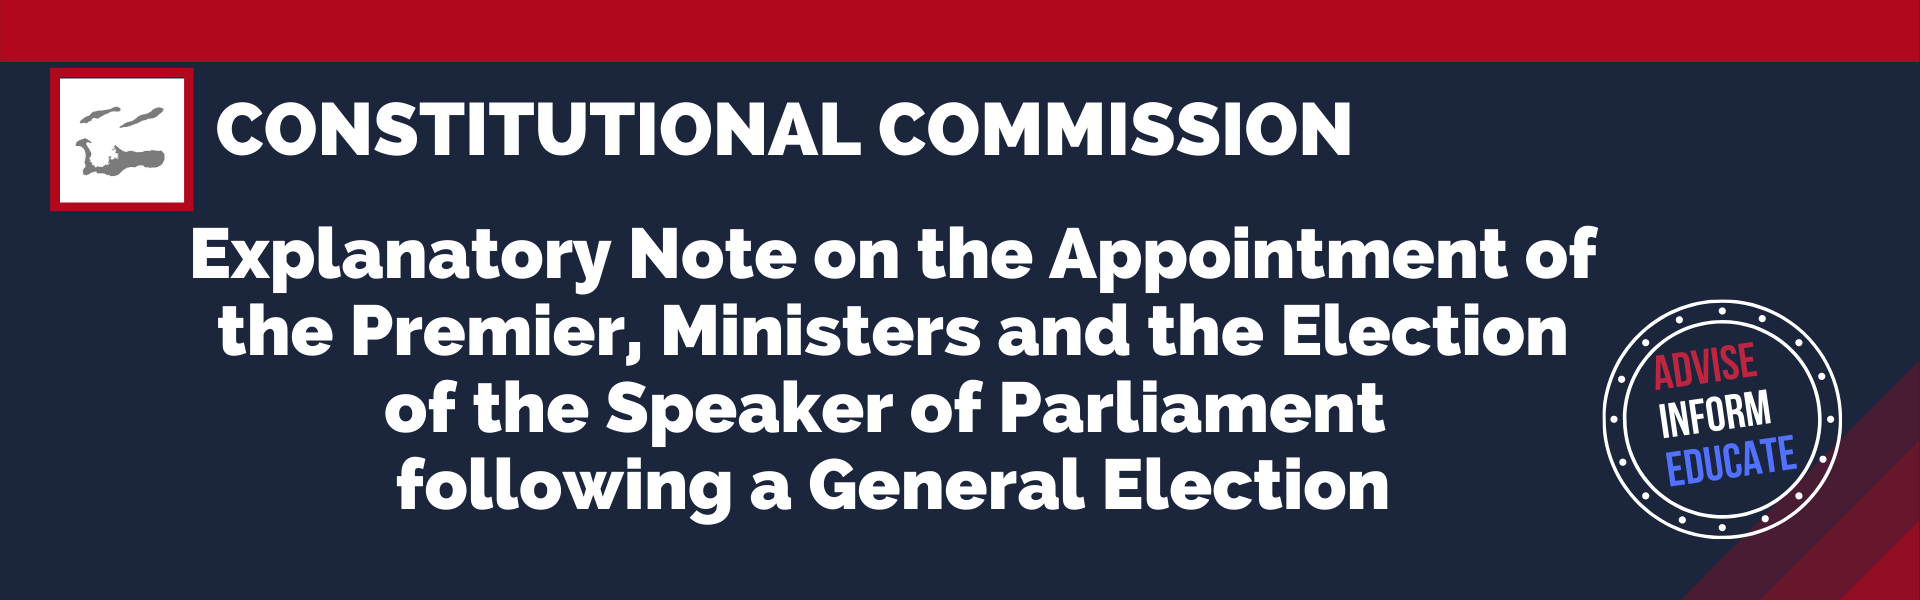 Explanatory Note on the Appointment of the Premier, Ministers and the Election of the Speaker